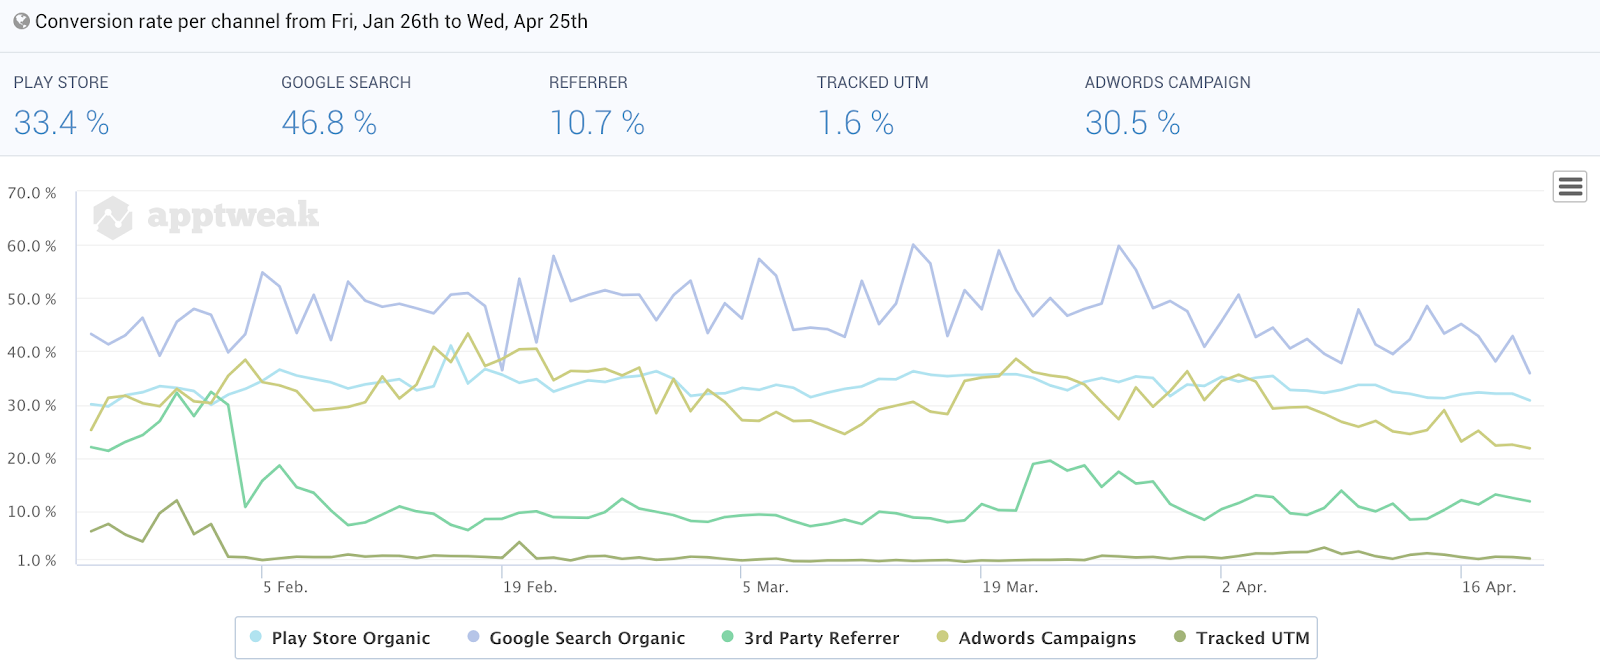 Google Play Conversion Rate per Channel